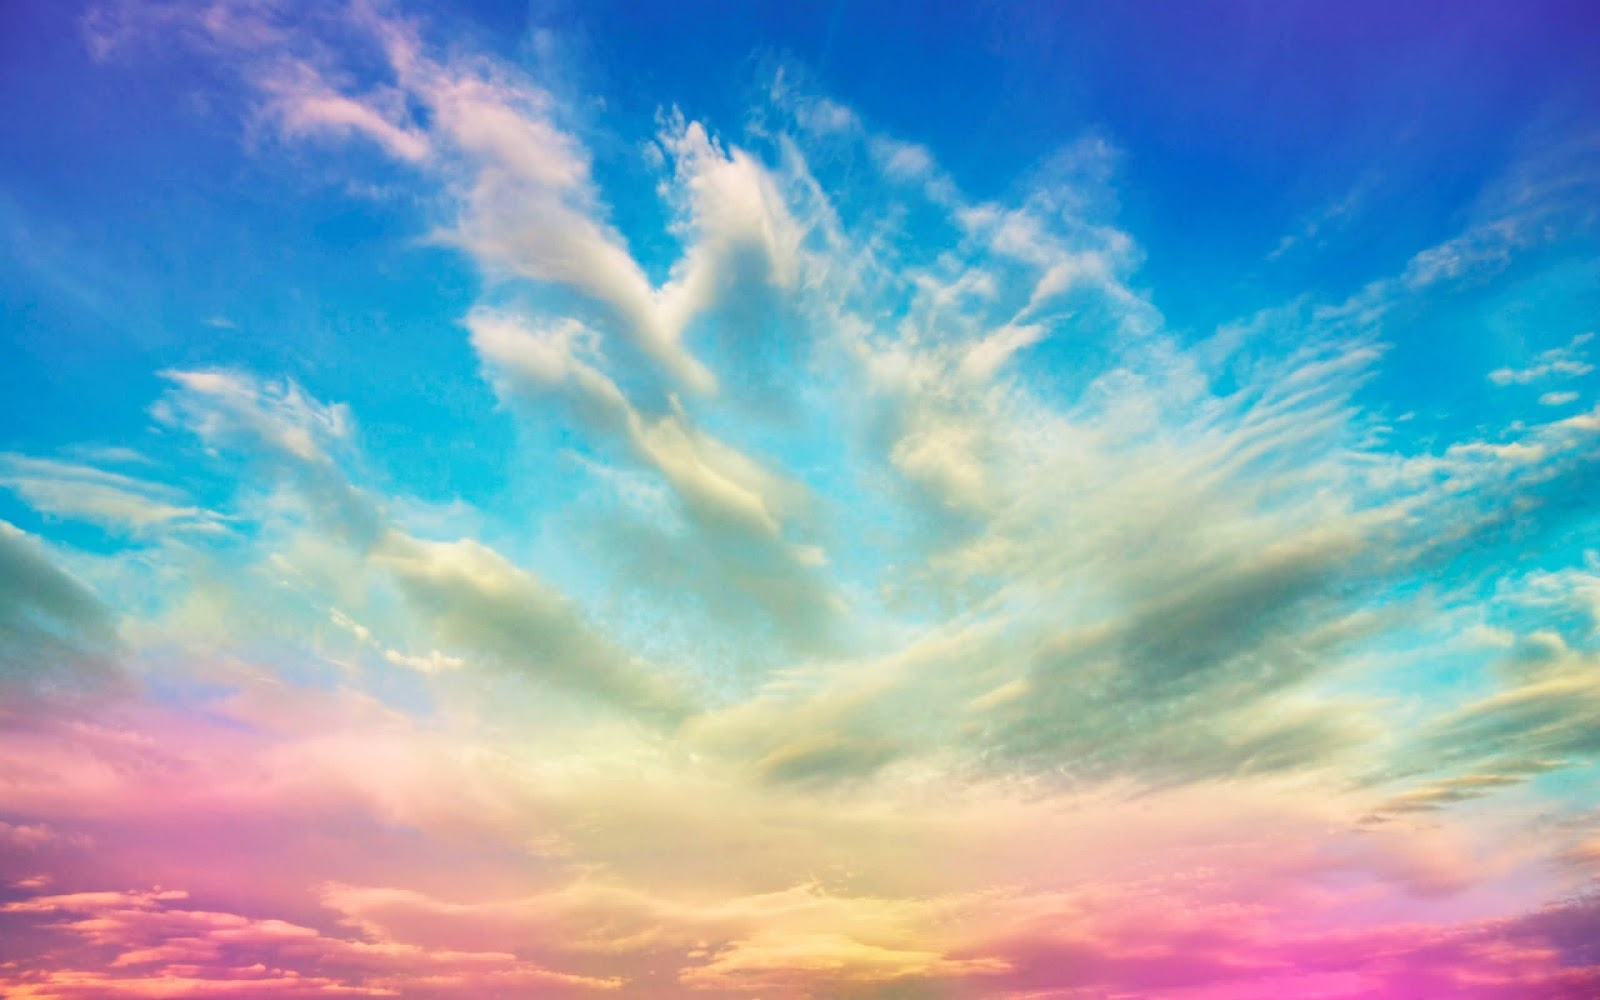 sky clouds wallpaper hd - photo #6